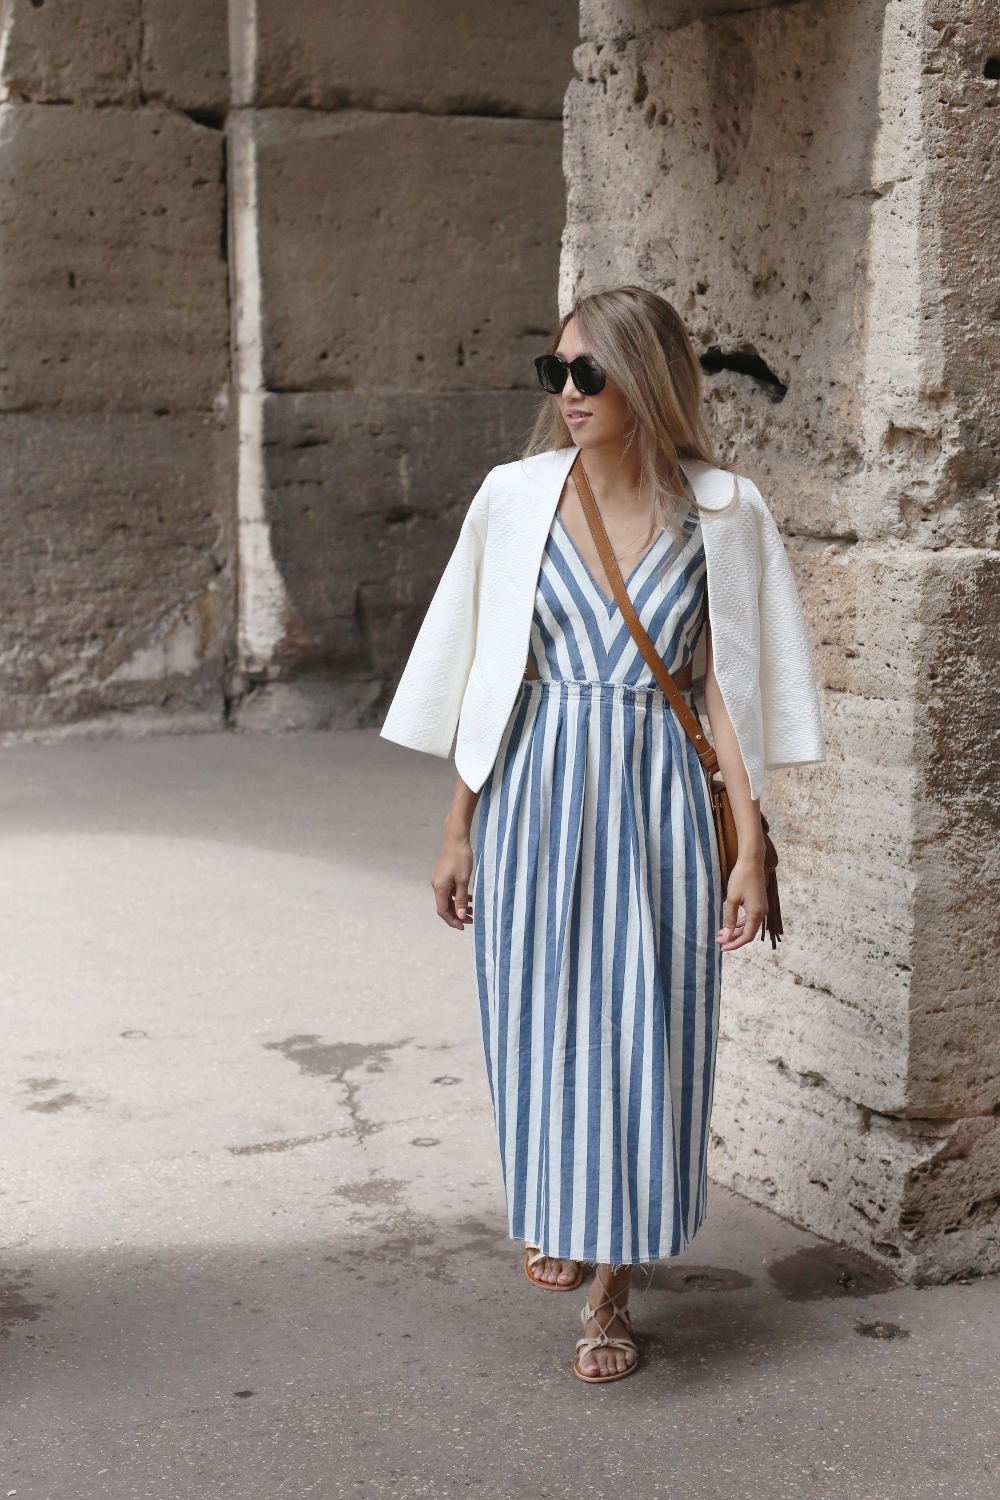 Beyond Basic Blog When In Rome Colosseum Zara Stripe Denim Dress Banana Republic Blazer